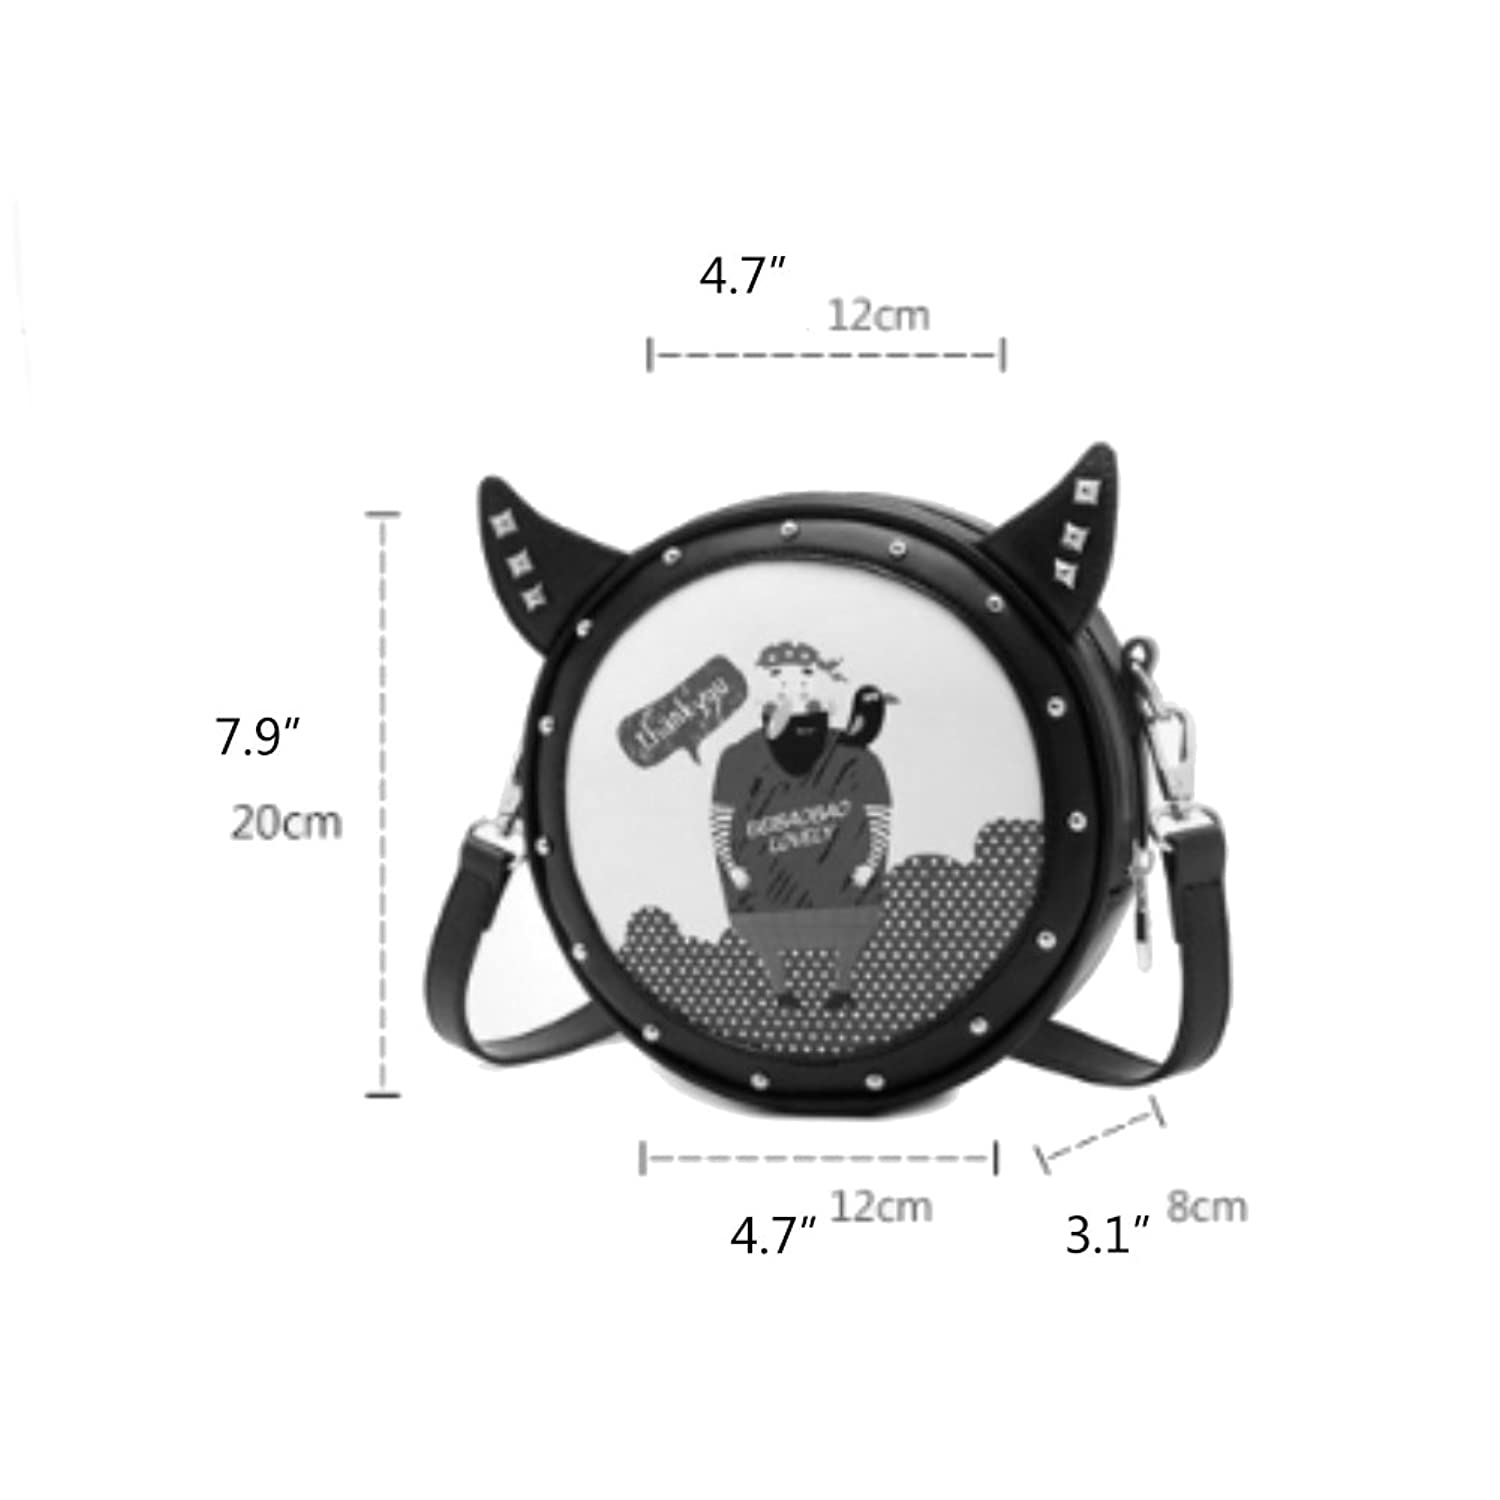 MAINLYCOR CHB880456 Fashion PU Leather Cute Cartoon Women's Handbag,Round Other